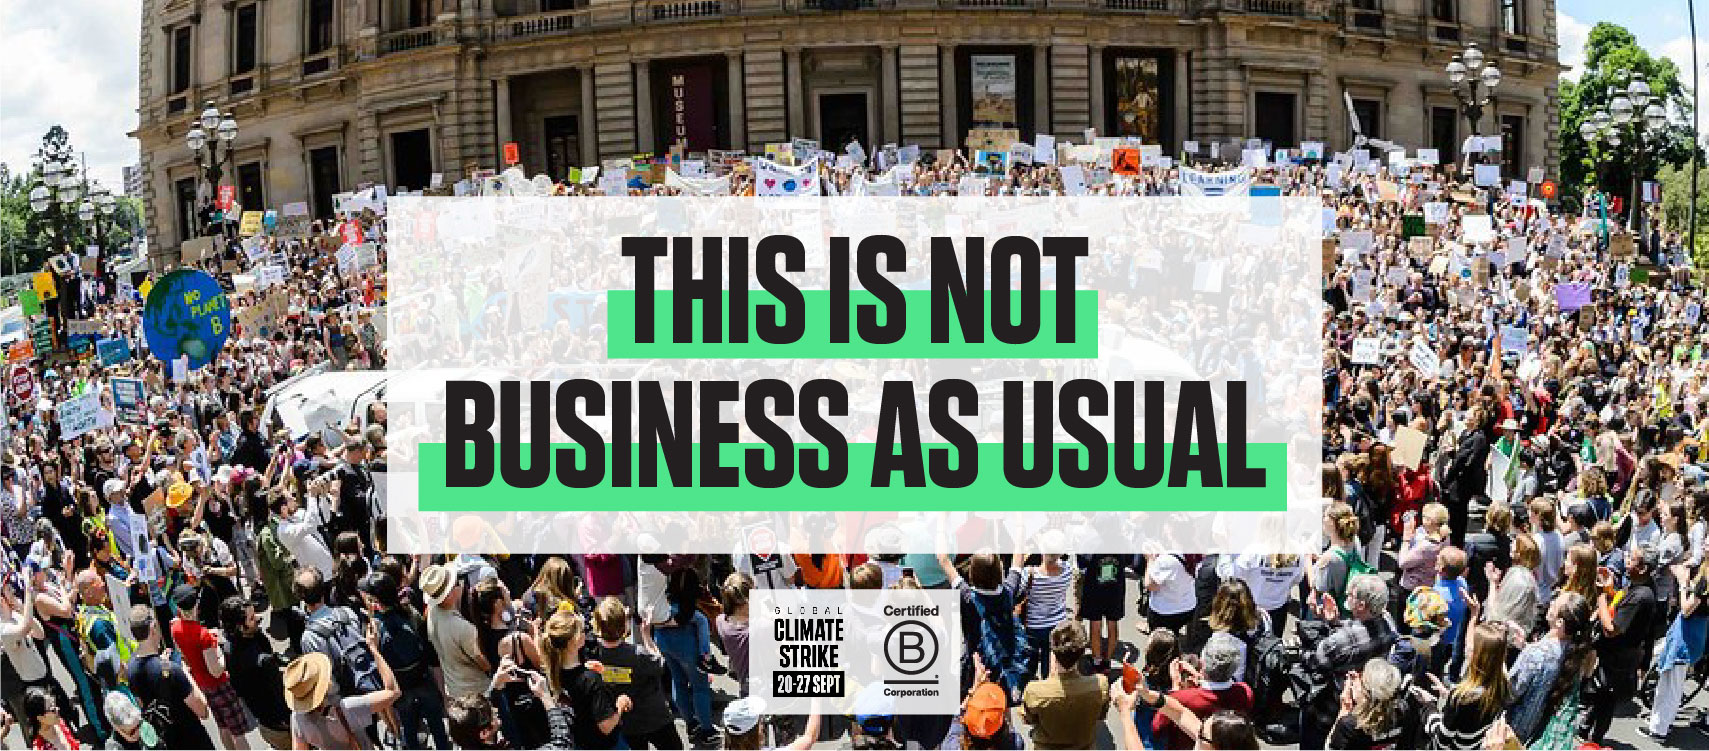 Not business as usual global climate strike